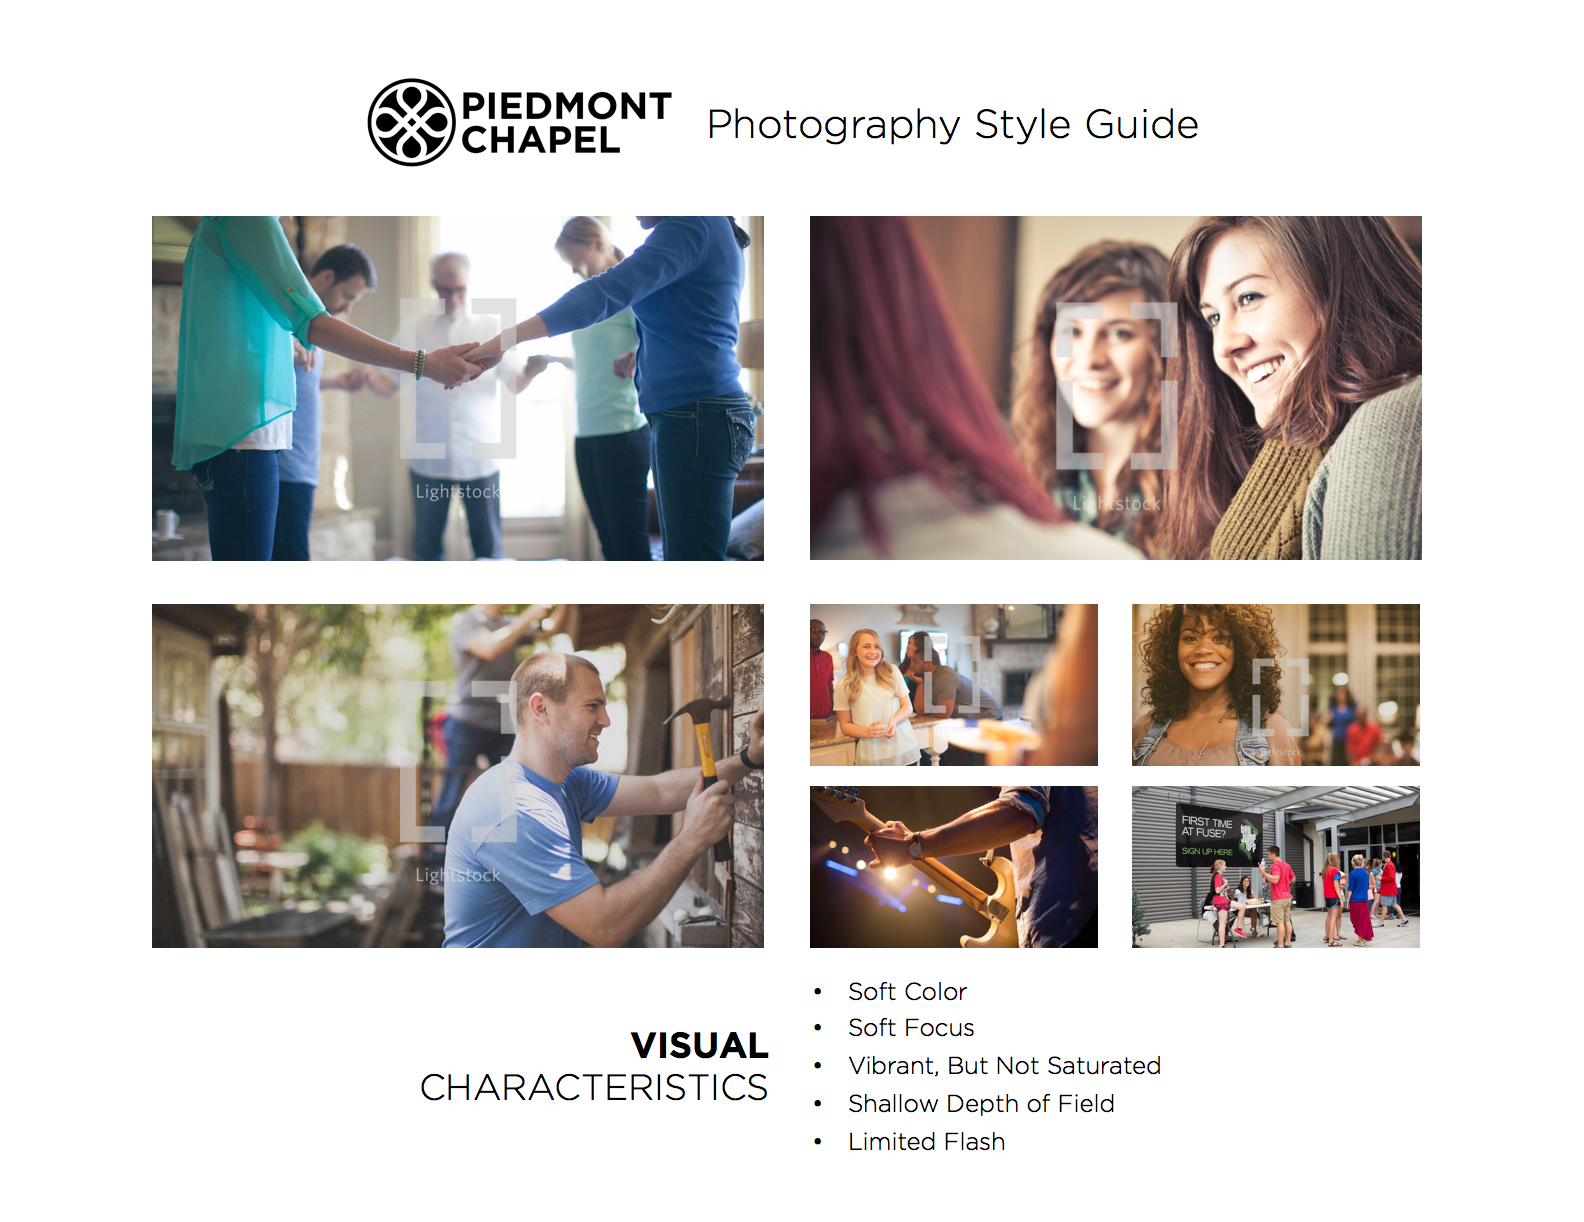 Piedmont Chapel Photography Style Guide - Page 1